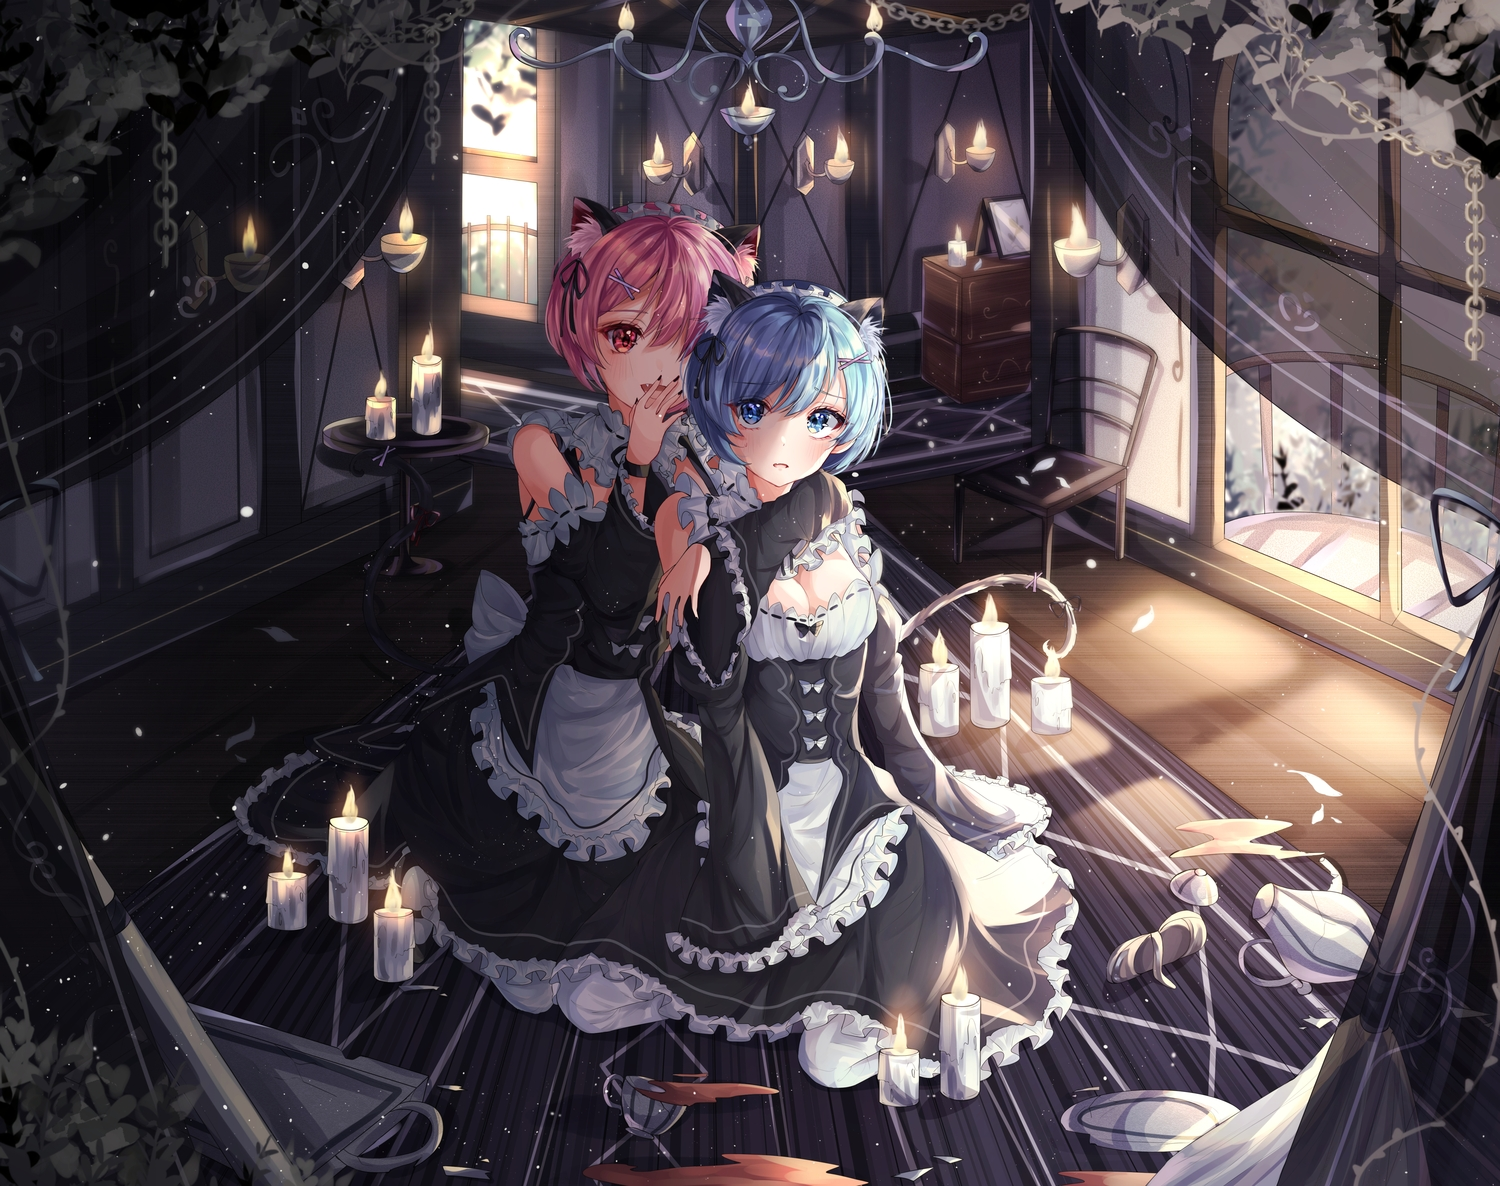 2girls animal_ears aqua_eyes blue_eyes blue_hair blush catgirl headband maid purple_hair ram_(re:zero) rem_(re:zero) re:zero_kara_hajimeru_isekai_seikatsu short_hair tail twins wine_(2148_wine)